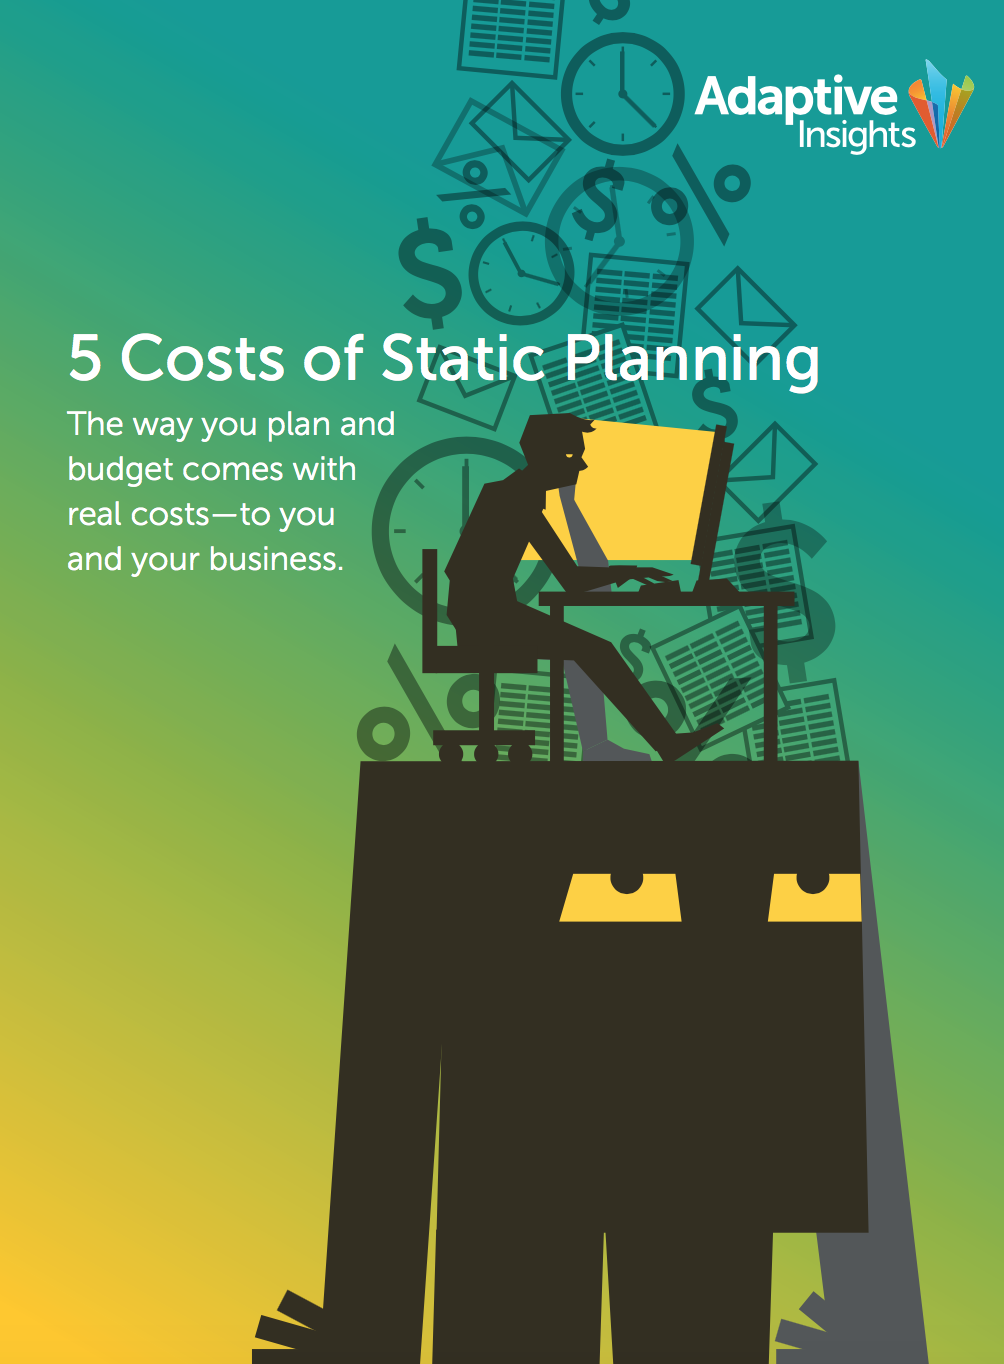 5 Costs of Static Planning Image